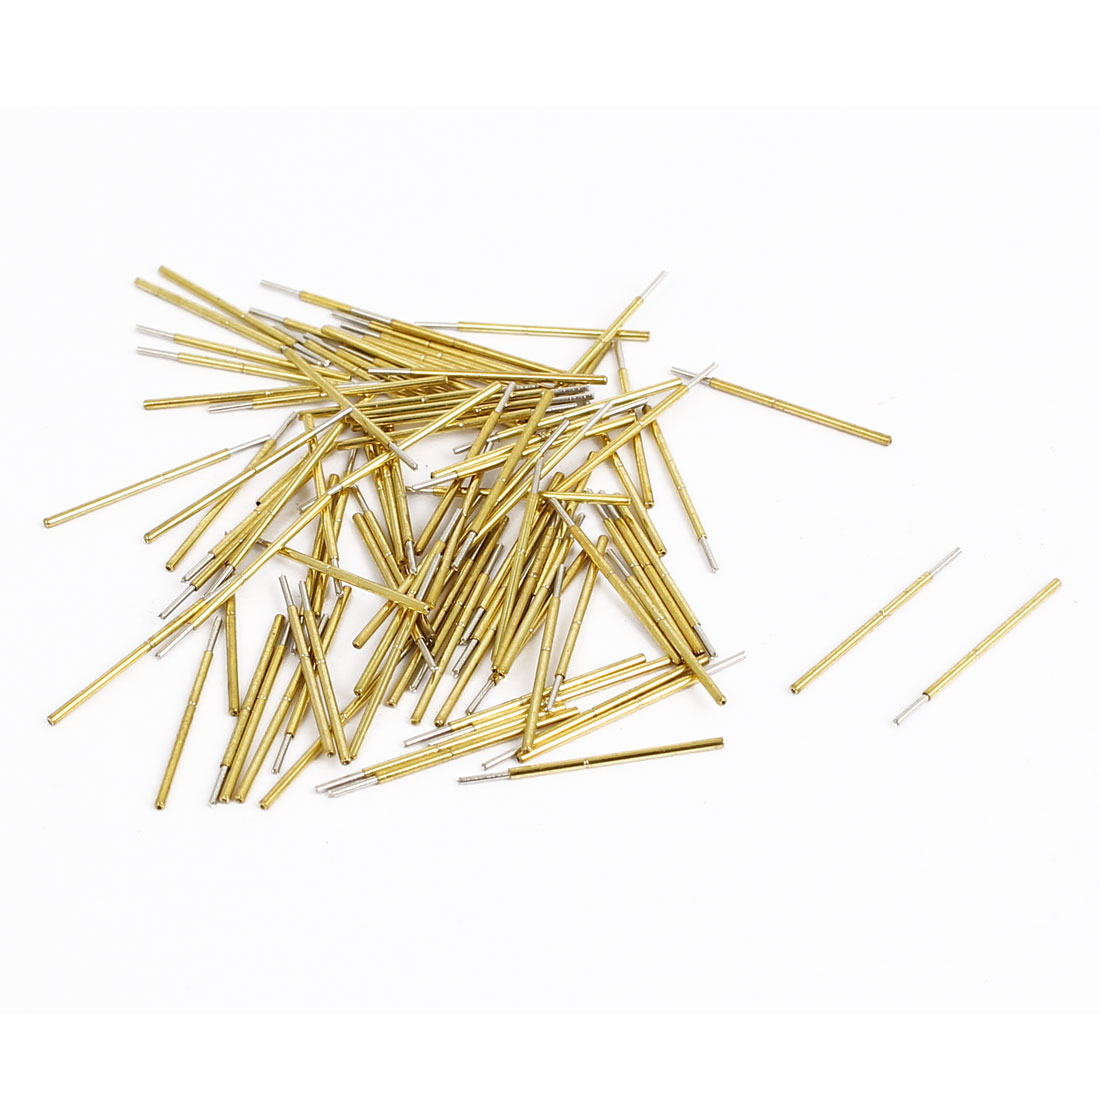 P50Q1 16mm Length 4-Point Crown Tip Spring Loaded Contact Test Probe Pin 100Pcs